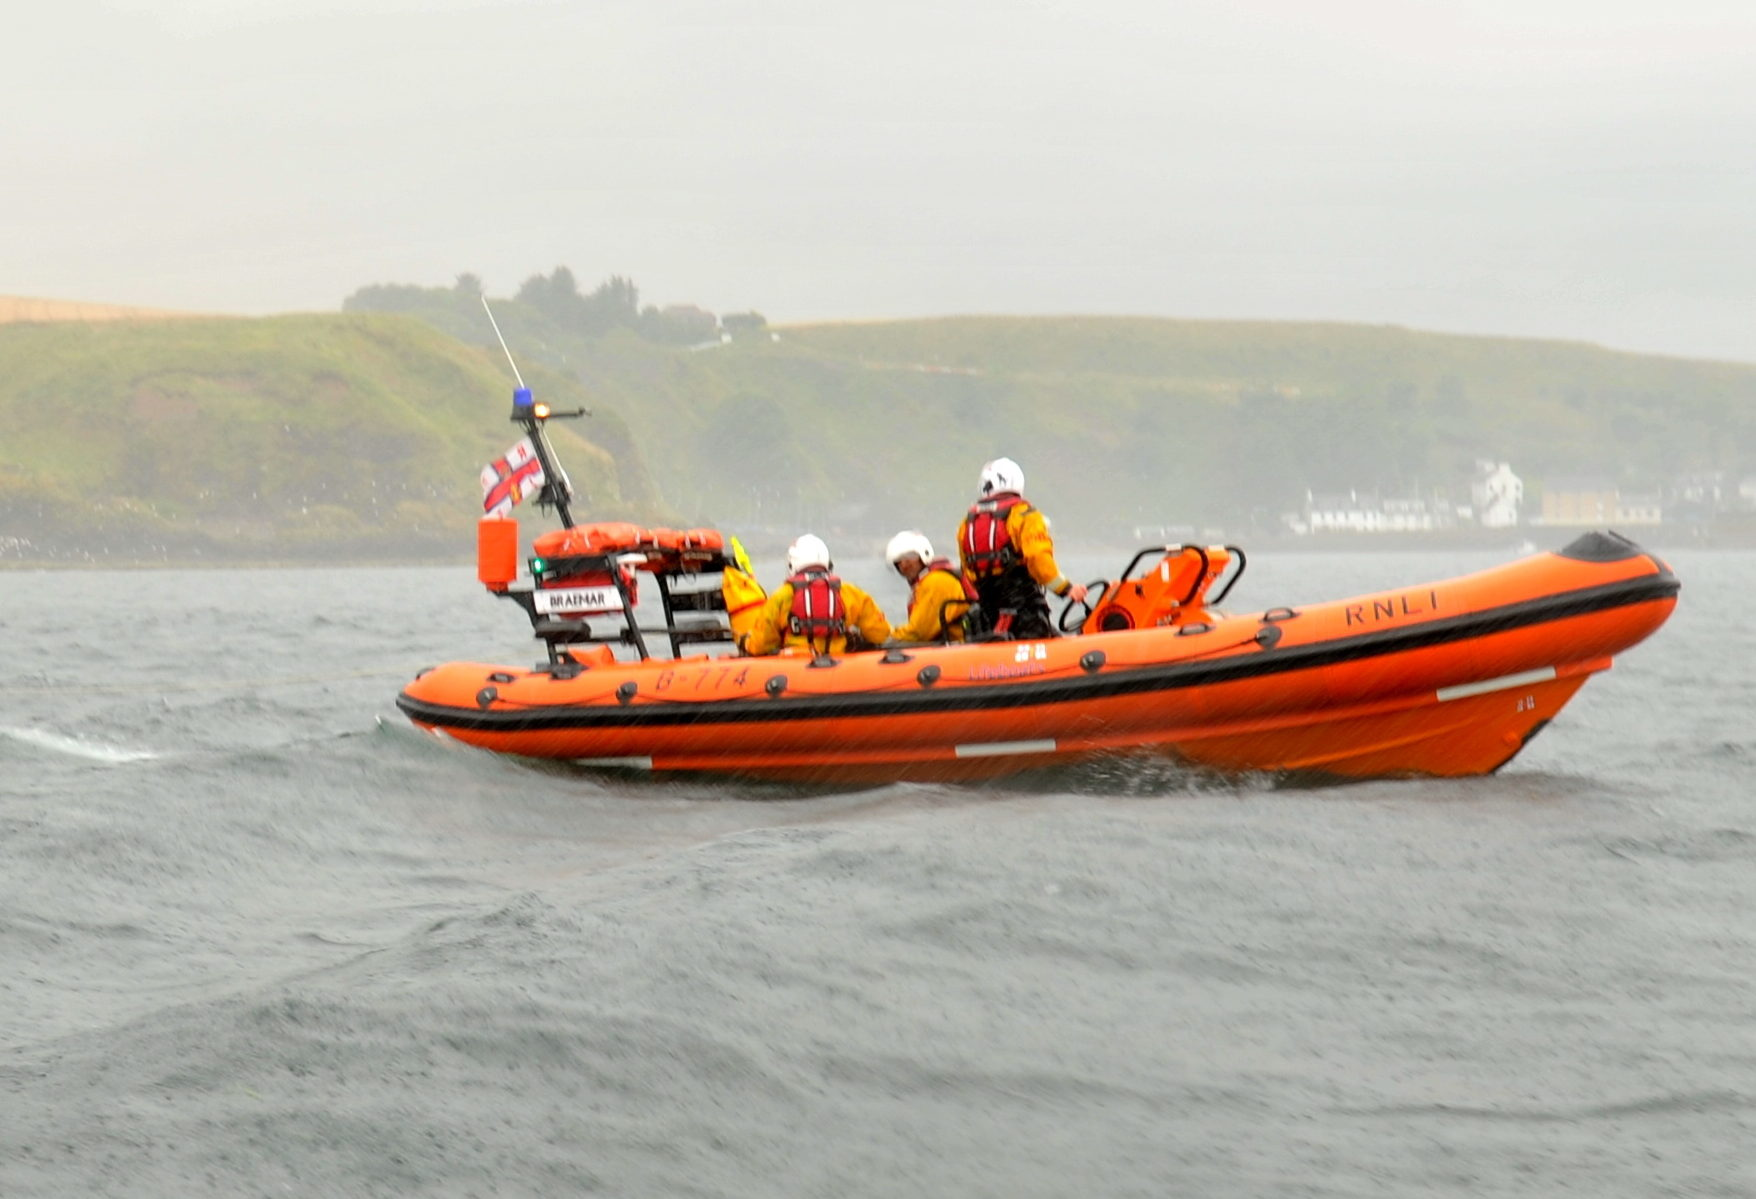 Stonehaven RNLI is urging people to exercise caution when visiting the coast.